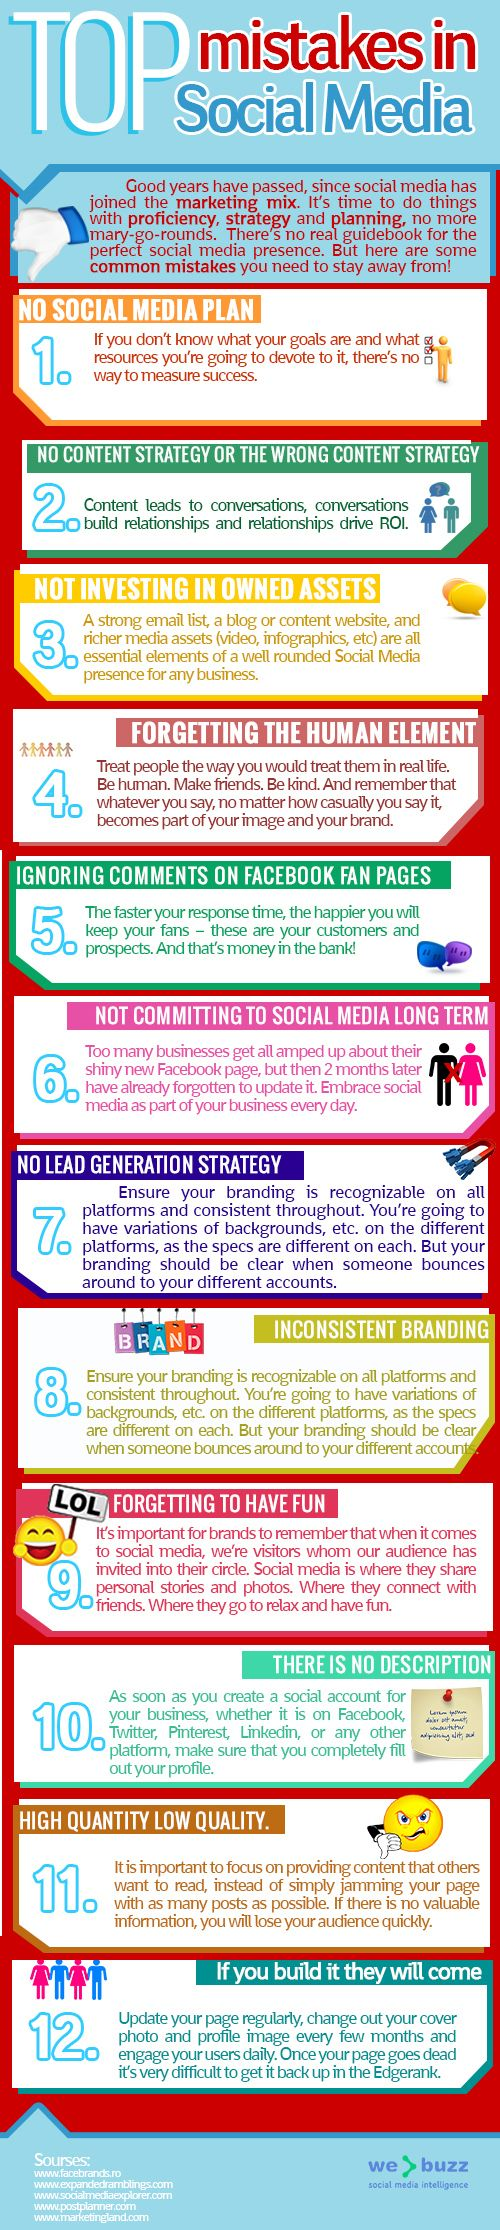 Top Mistakes In Social Media | Infographic